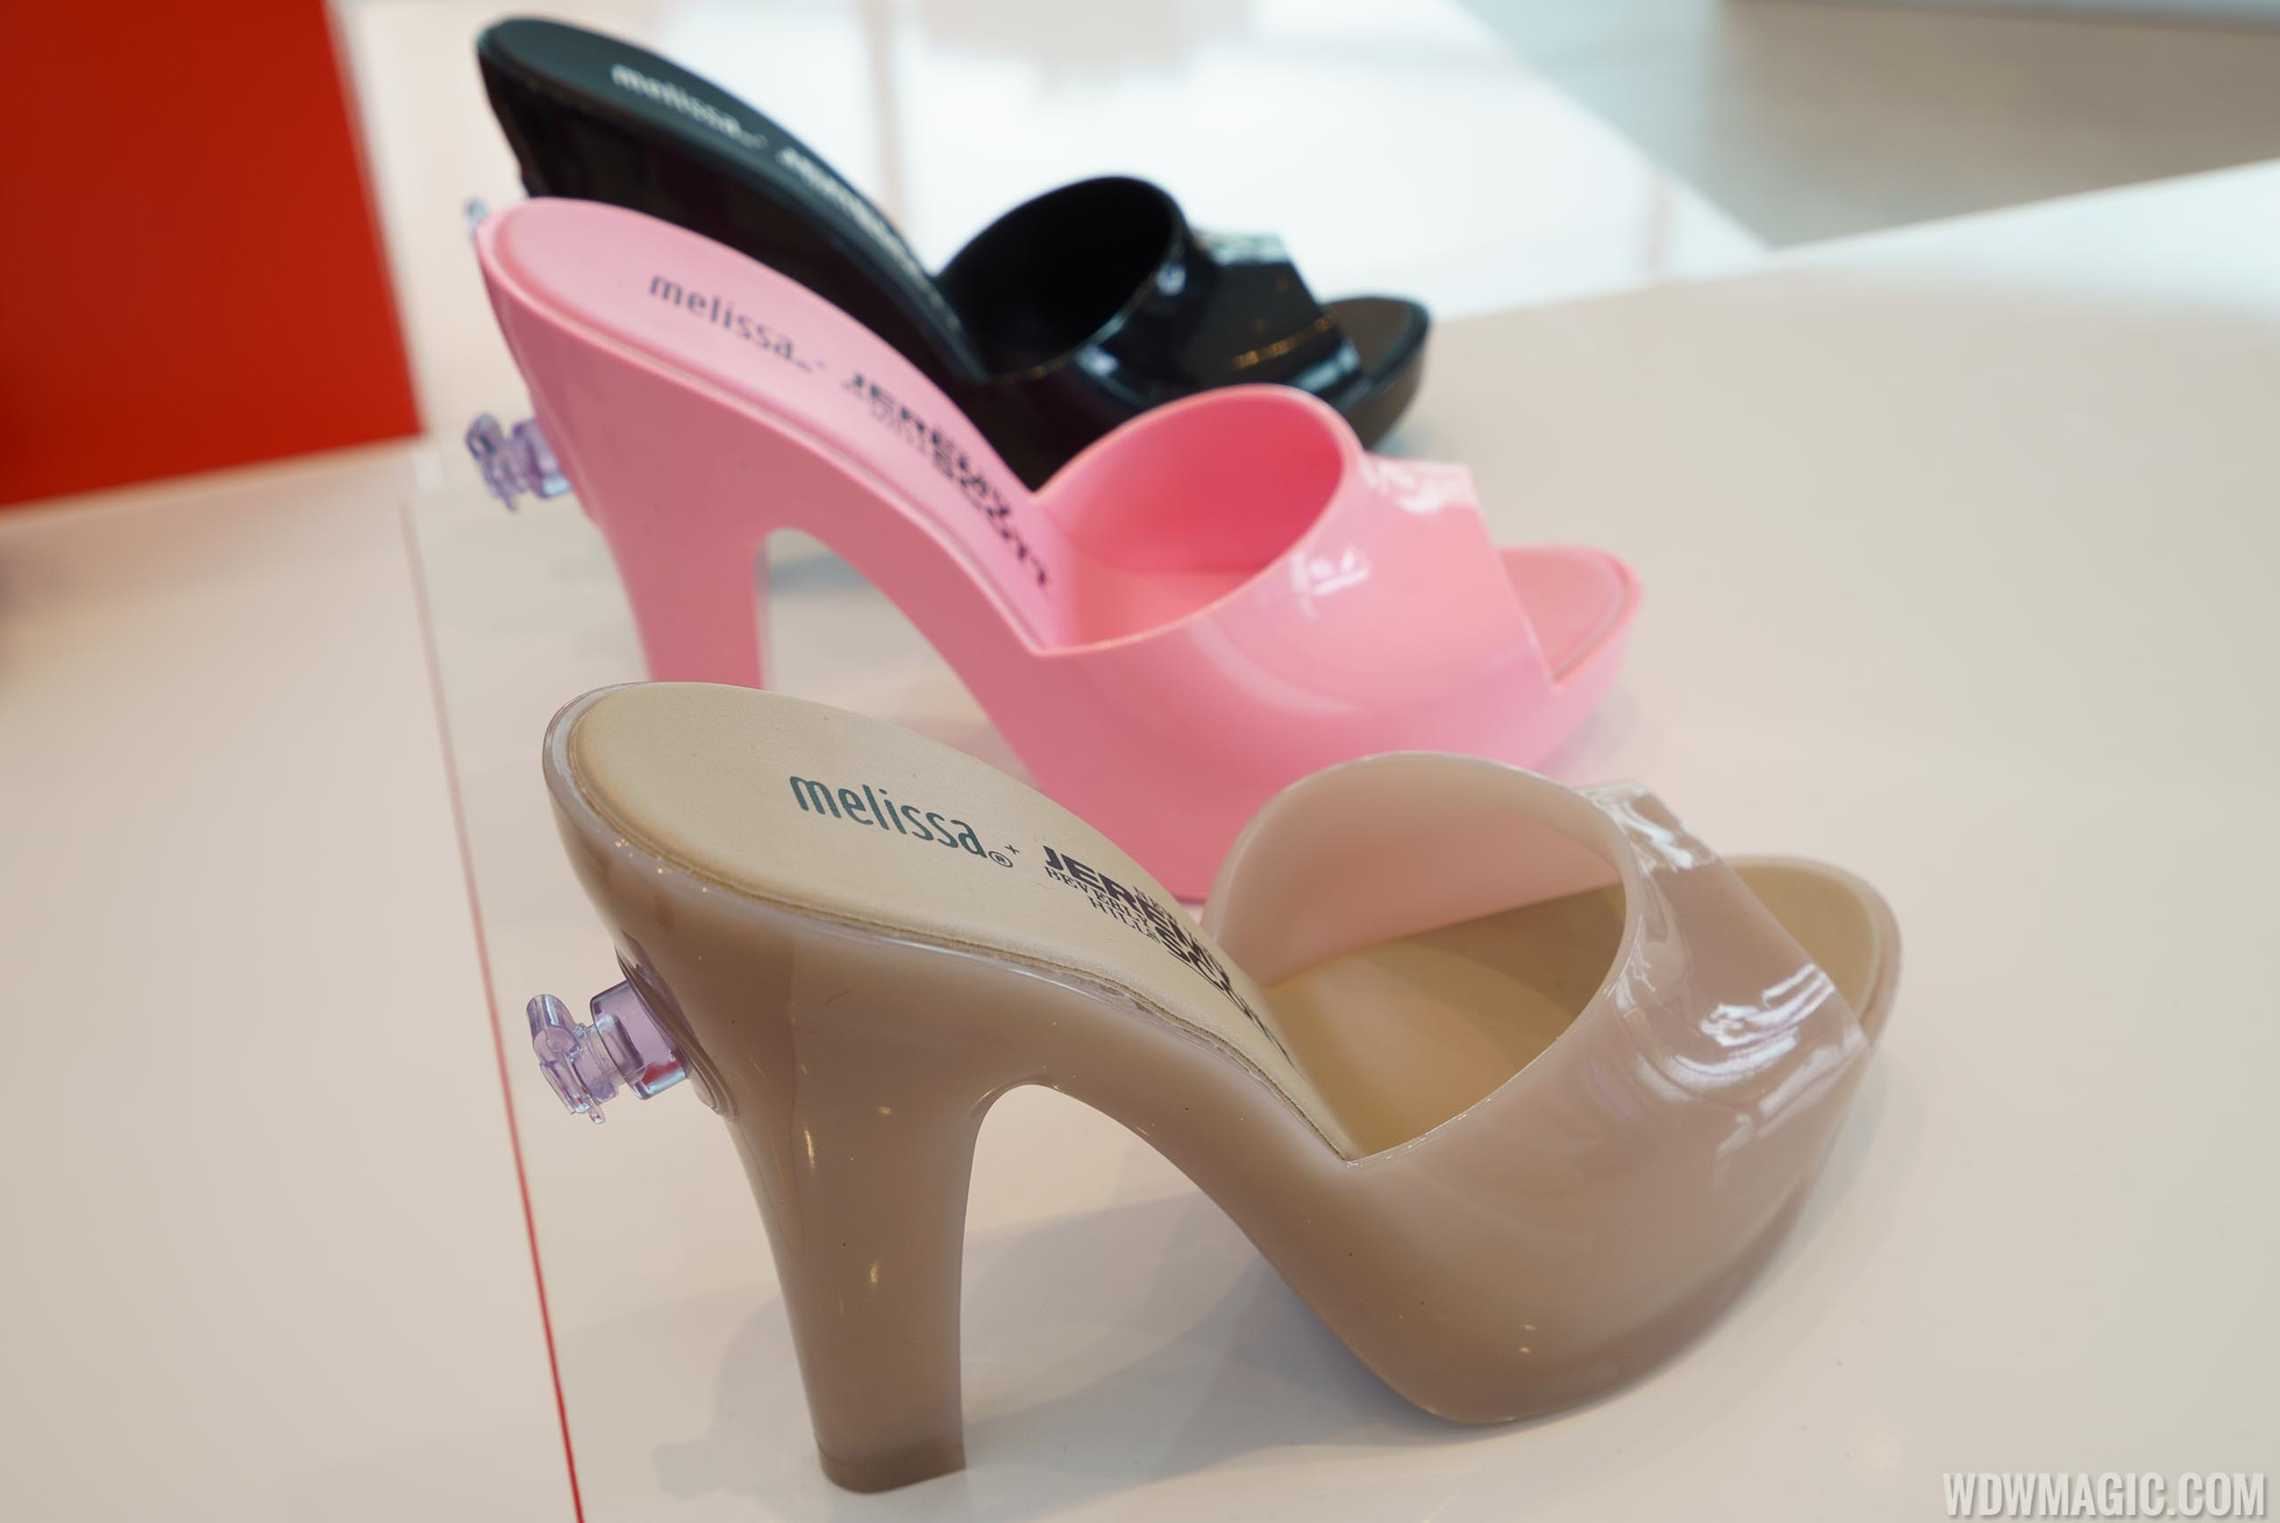 Melissa Jelly Shoes New York